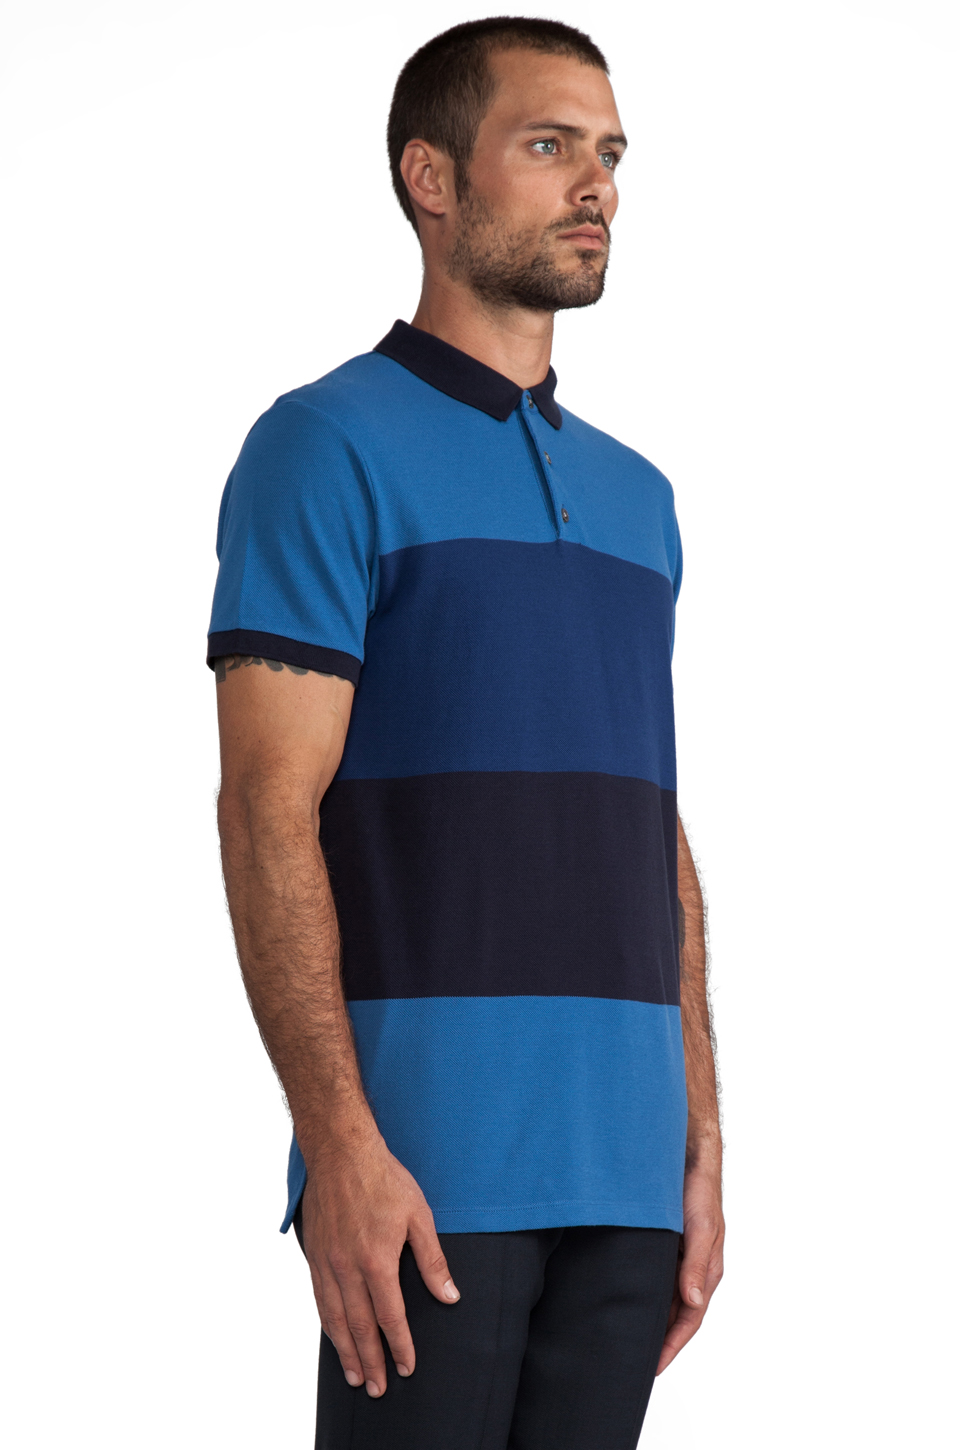 Marc by Marc Jacobs Newport Polo in Delft Multi